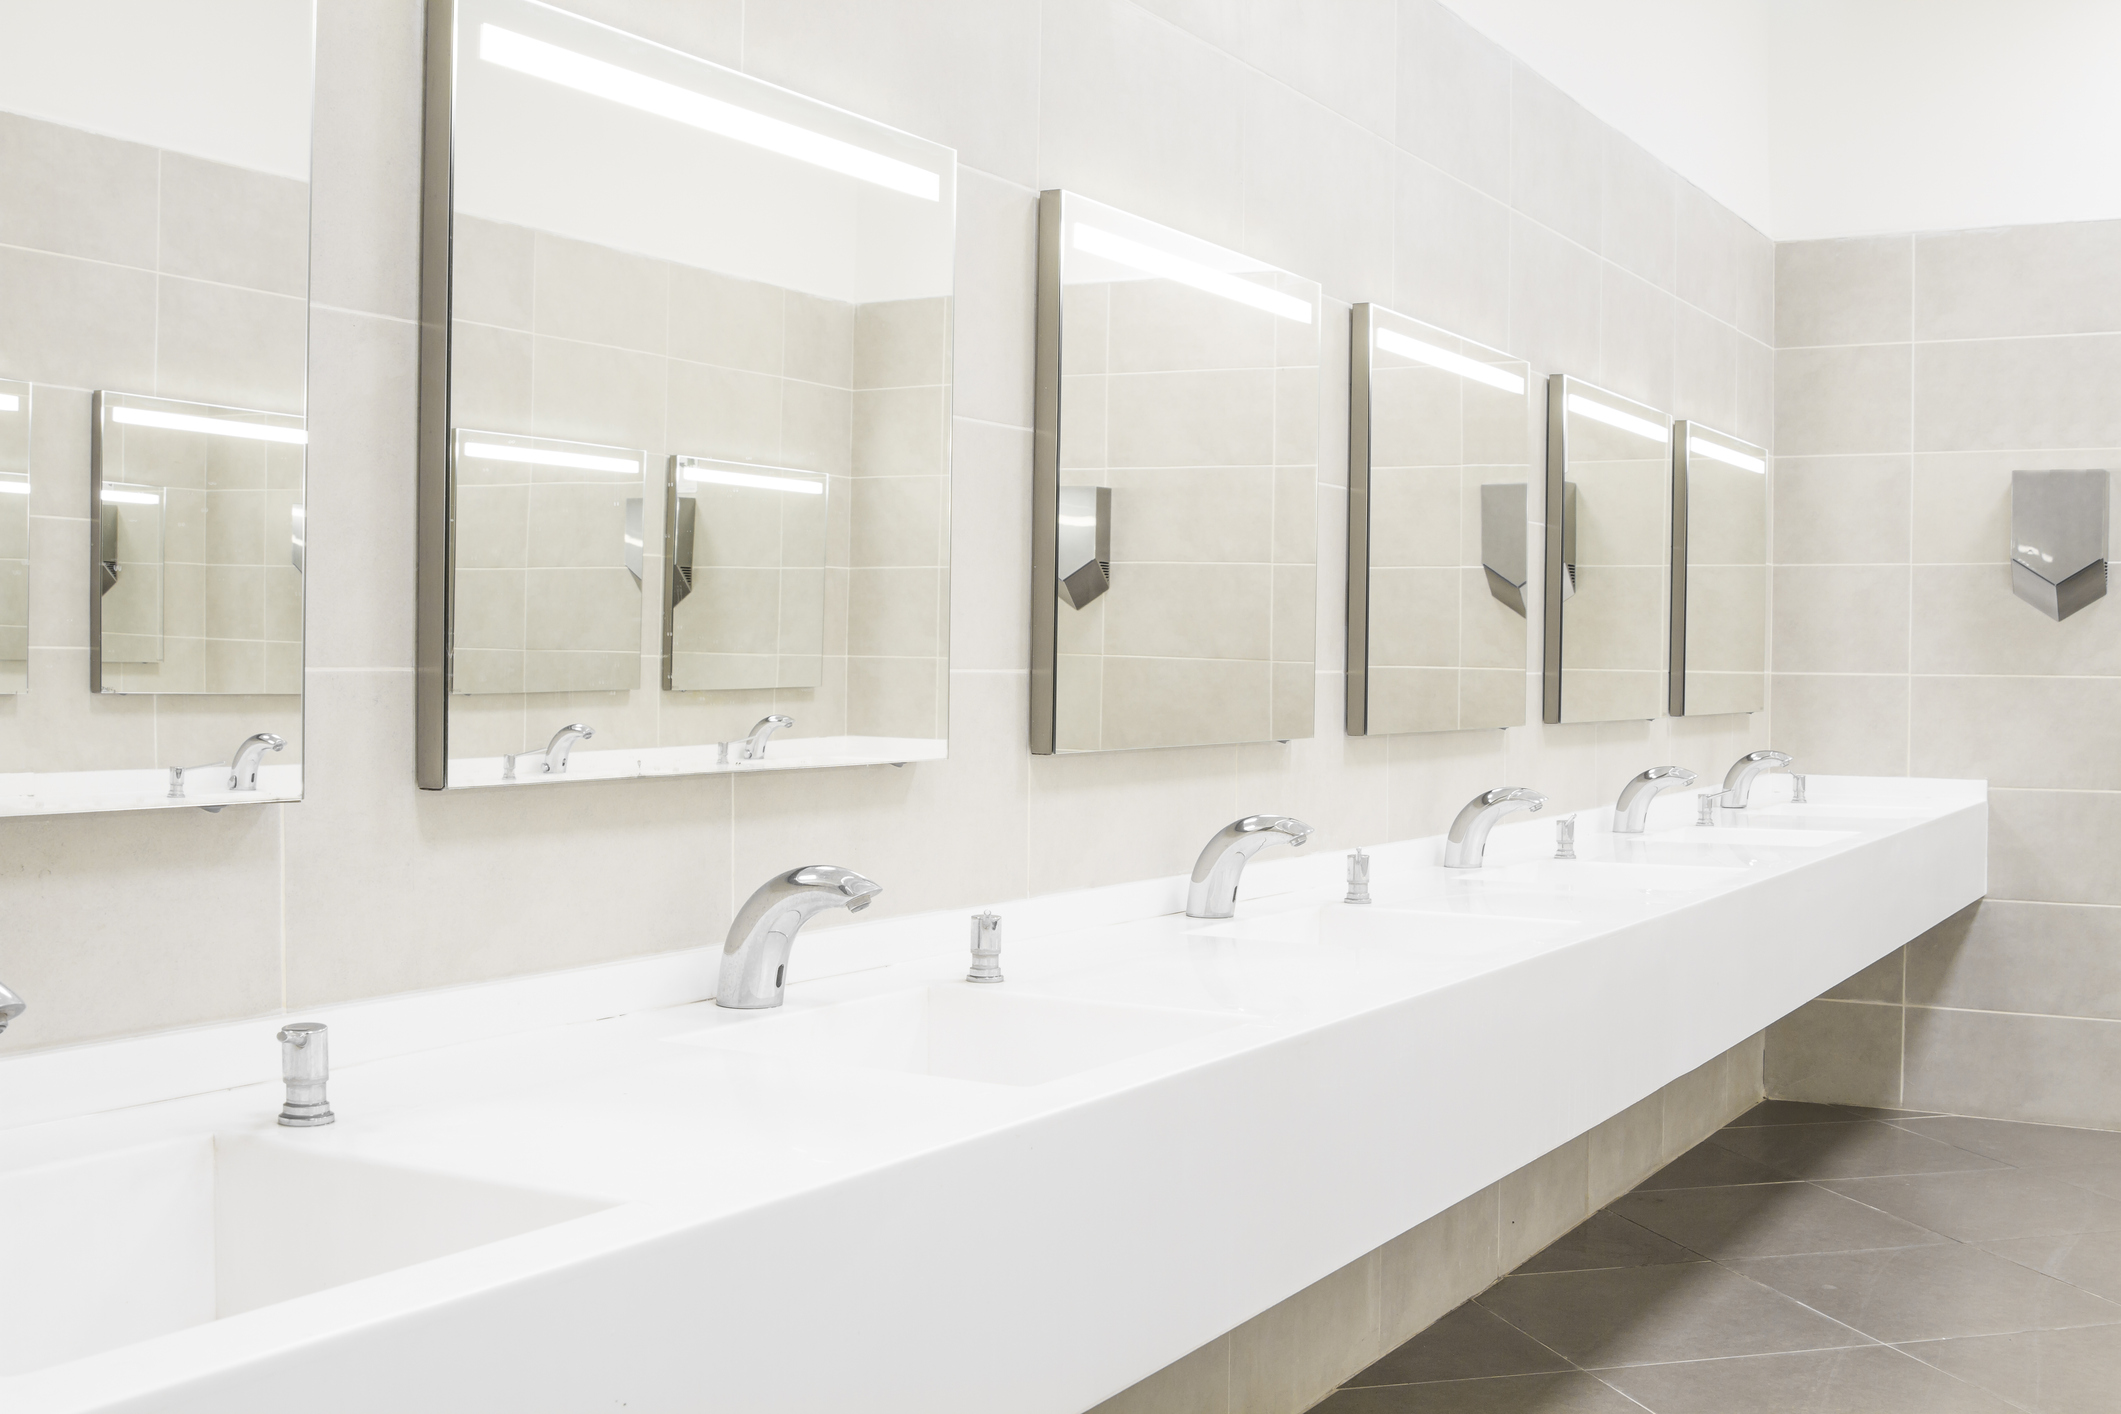 Restrooms Areas: - Clean and Disinfect Sinks, Toilets, and UrinalsClean and Polish Dispensers, Fixtures, and MirrorsEmpty Trash and Replace LinersSweep and Mop All Hard Floor AreasRestock Paper and Soap Products